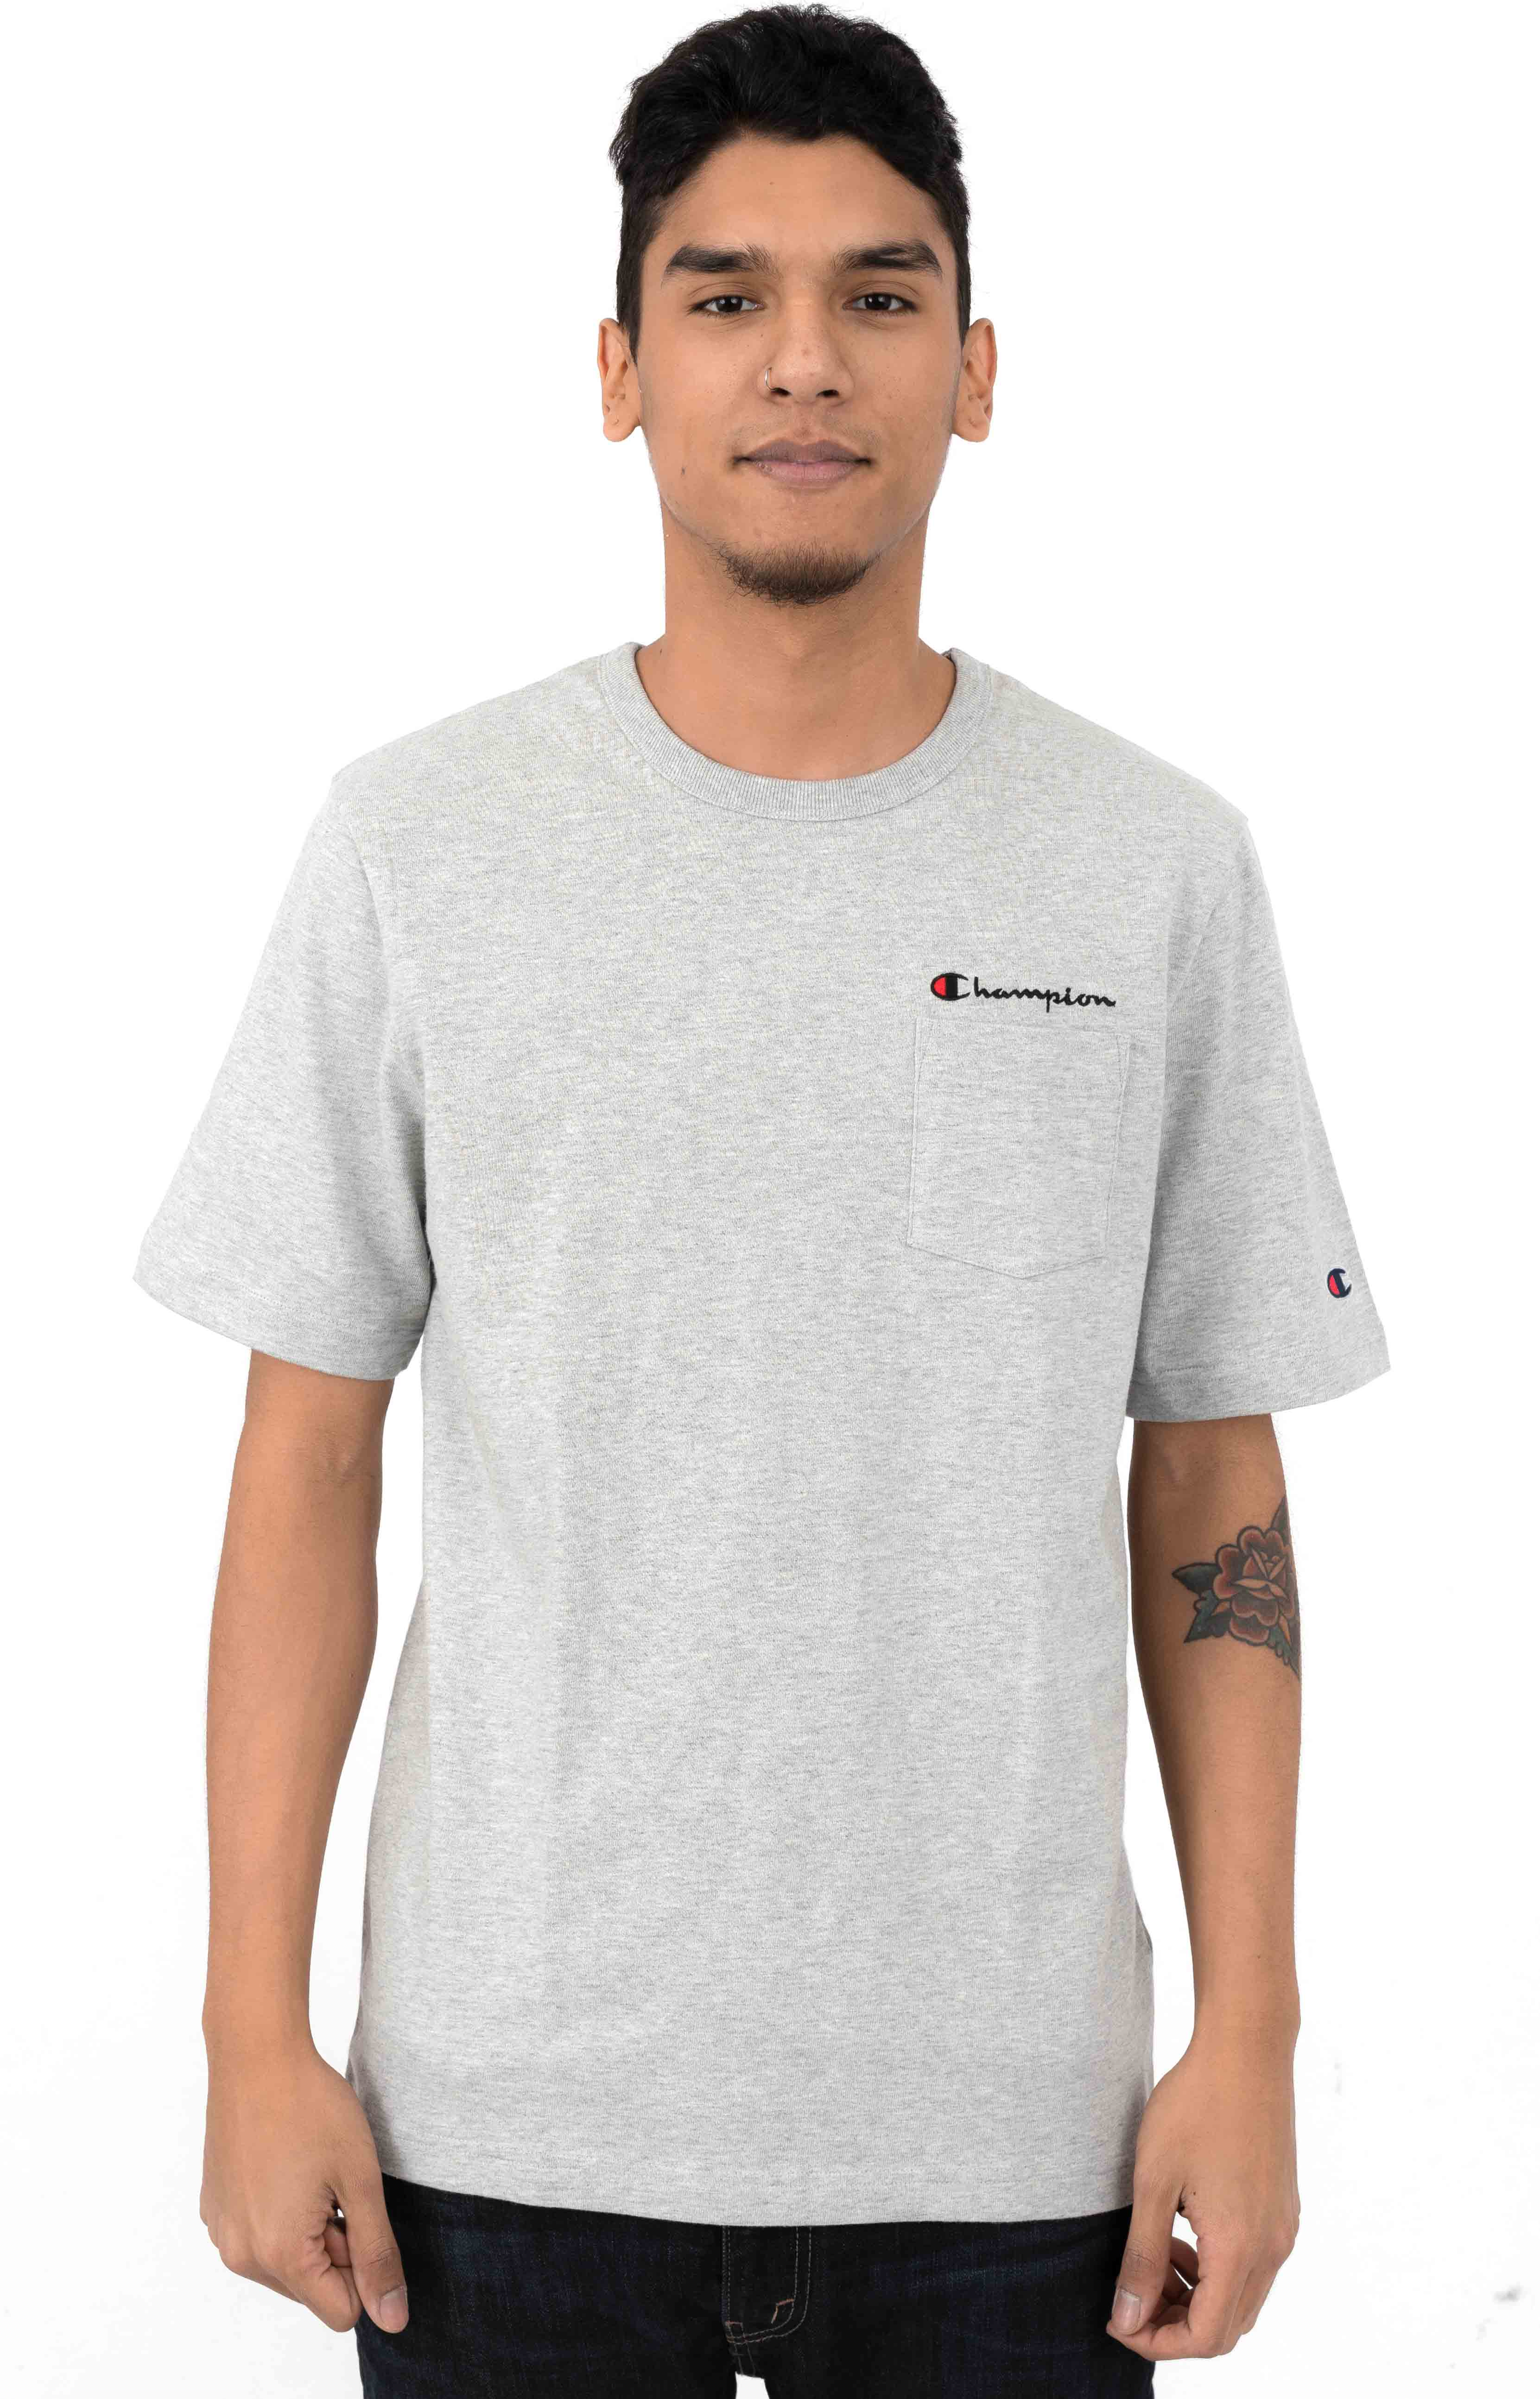 Heritage Pocket T-Shirt - Oxford Grey